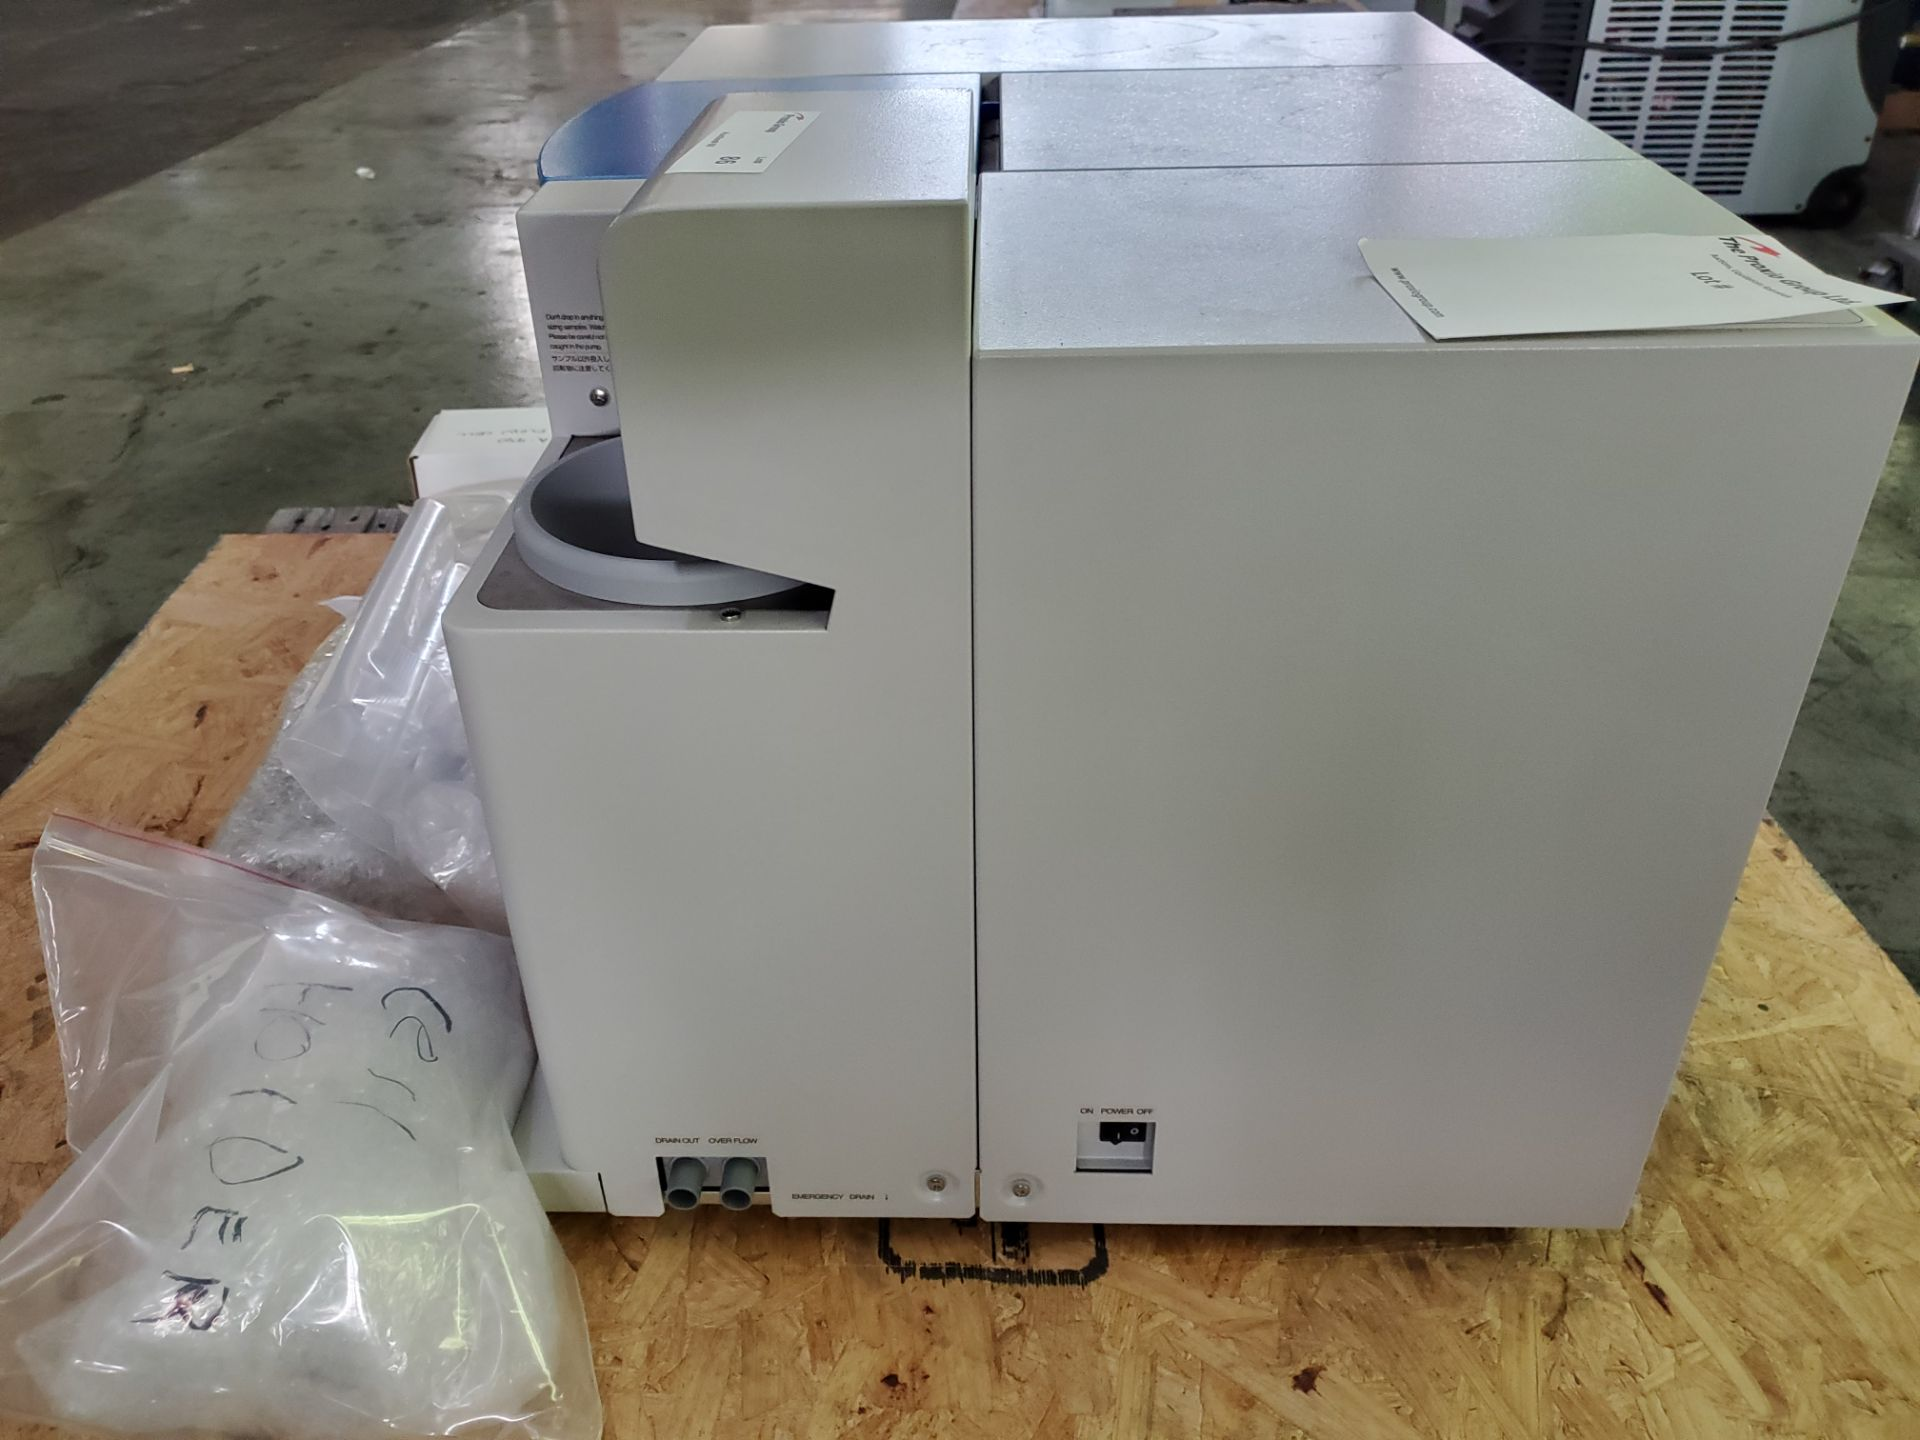 Horiba Laser Scattering Particle Size Distribution Analyzer, model LA-950, with components, - Image 3 of 7